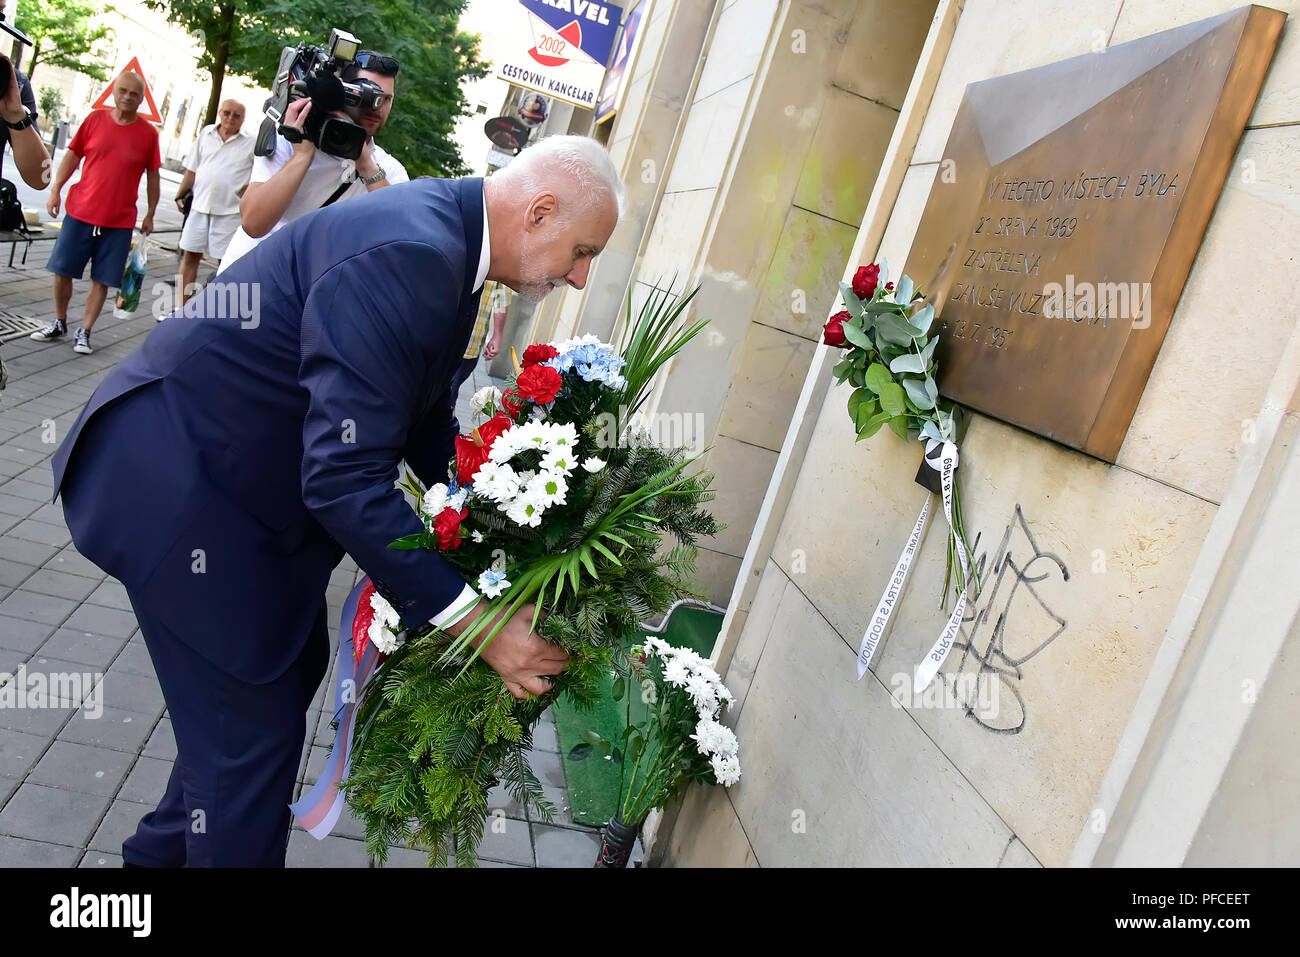 Brno, Czech Republic. 21st Aug, 2018. South Moravia Region Governor Bohumil Simek lays a wreath to commemorative plaque for Danuse Muzikarova, victim of Warsaw Pact invasion in August 1968, in Brno, Czech Republic, on August 21-018. Credit: Igor Sefr/CTK Photo/Alamy Live News Stock Photo